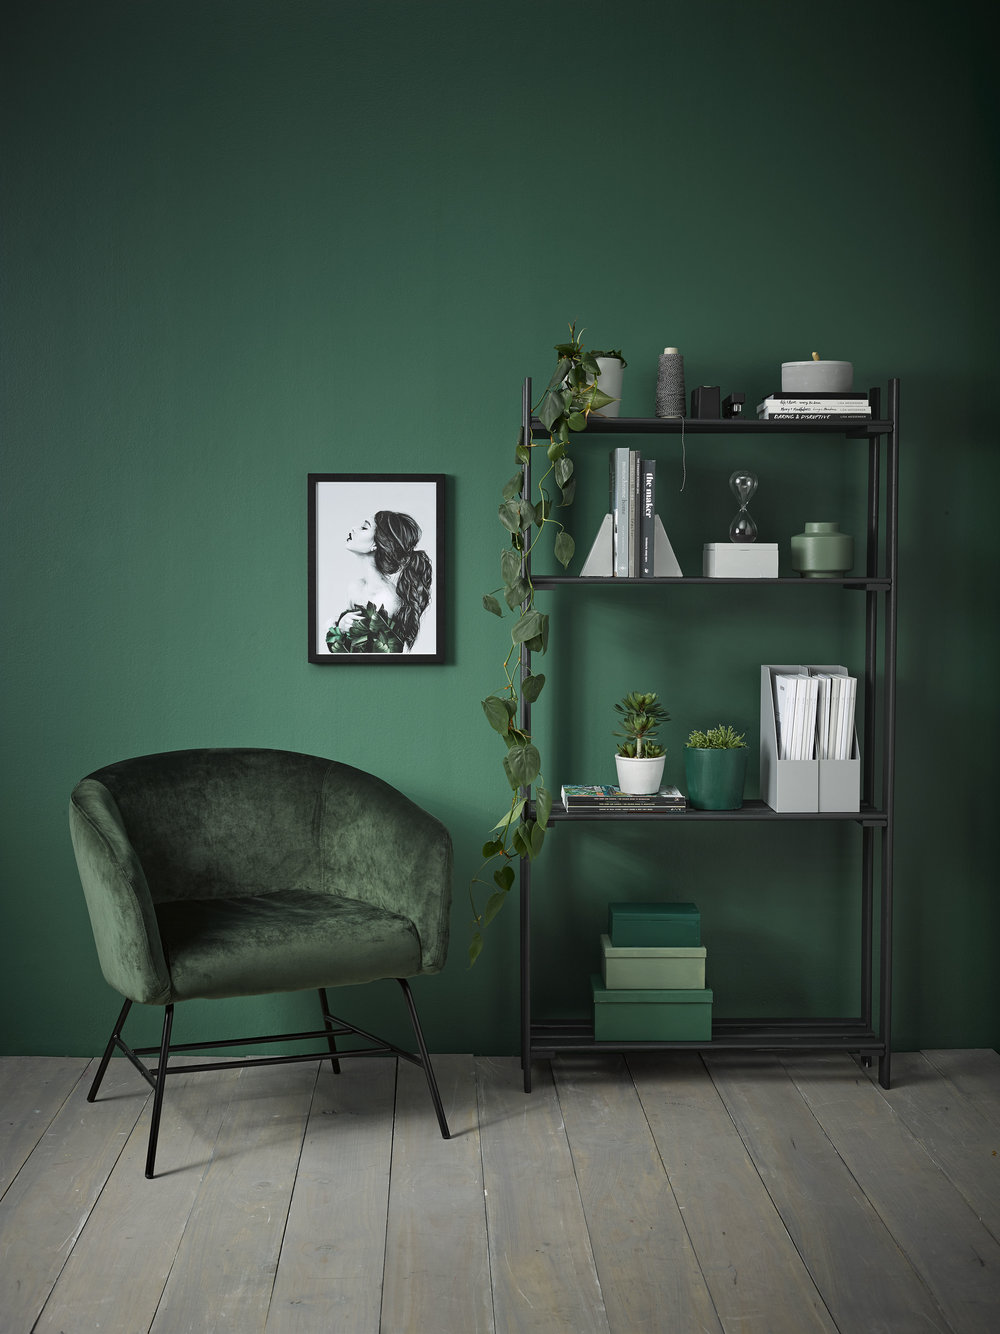 Walls in Resene Mother Nature. Floorboards in Resene Colorwood Greywash. Desk top, bookshelf and large planter in Resene Noir. Chair and vase in Resene Peace. Pen pot, book ends, round box and plant pot in Resene Silver Chalice. Boxes on shelf in Resene Permanent Green (big), Resene Rivergum (medium) and Resene Family Tree (small).